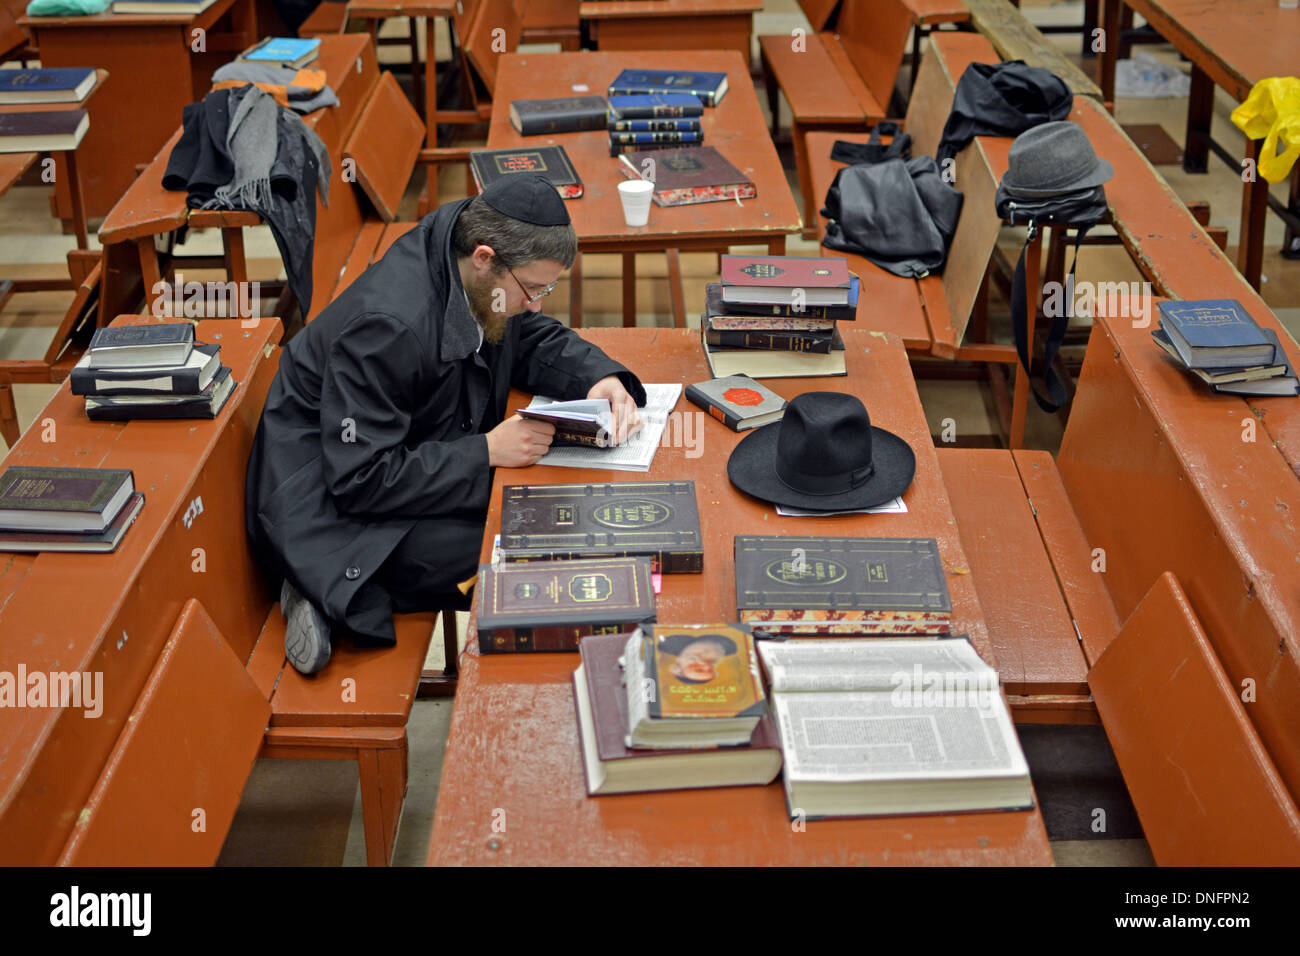 An Orthodox Jewish student studying alone in a large cluttered room at Lubavitch Headquarters in Crown Heights, Brooklyn, NY - Stock Image